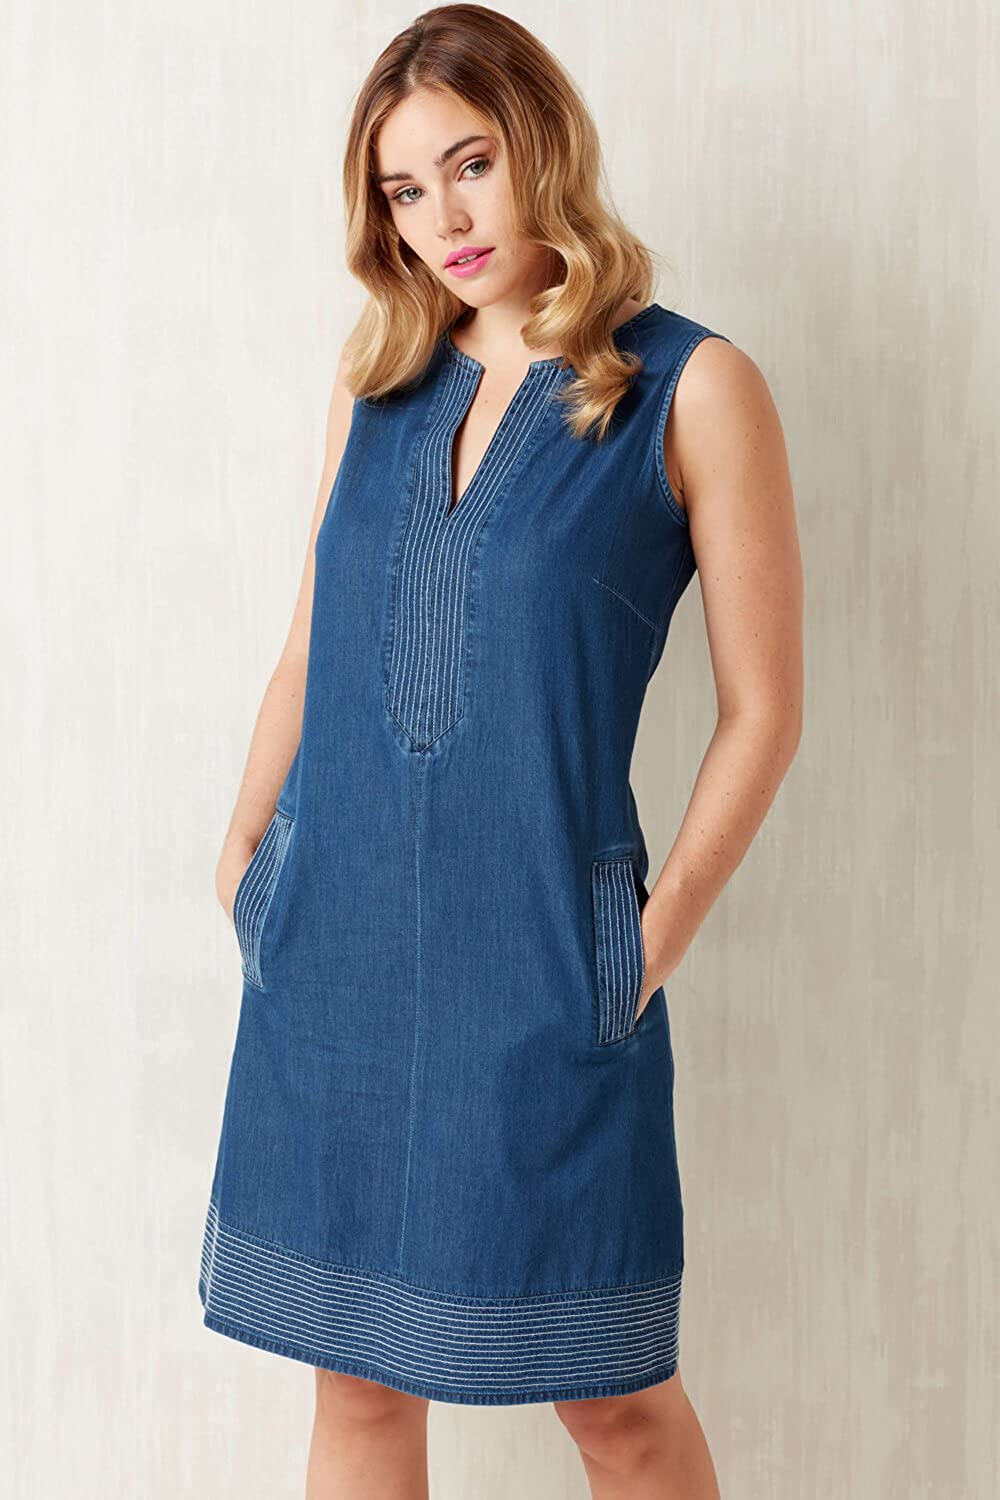 56b2ebb8db Roman Originals Women Shift Denim Dress - Ladies V-Neck Sleeveless Knee  Length Daytime 100% Cotton Jean Style Smock Dresses - Holiday Casual A-Line  Tunic ...